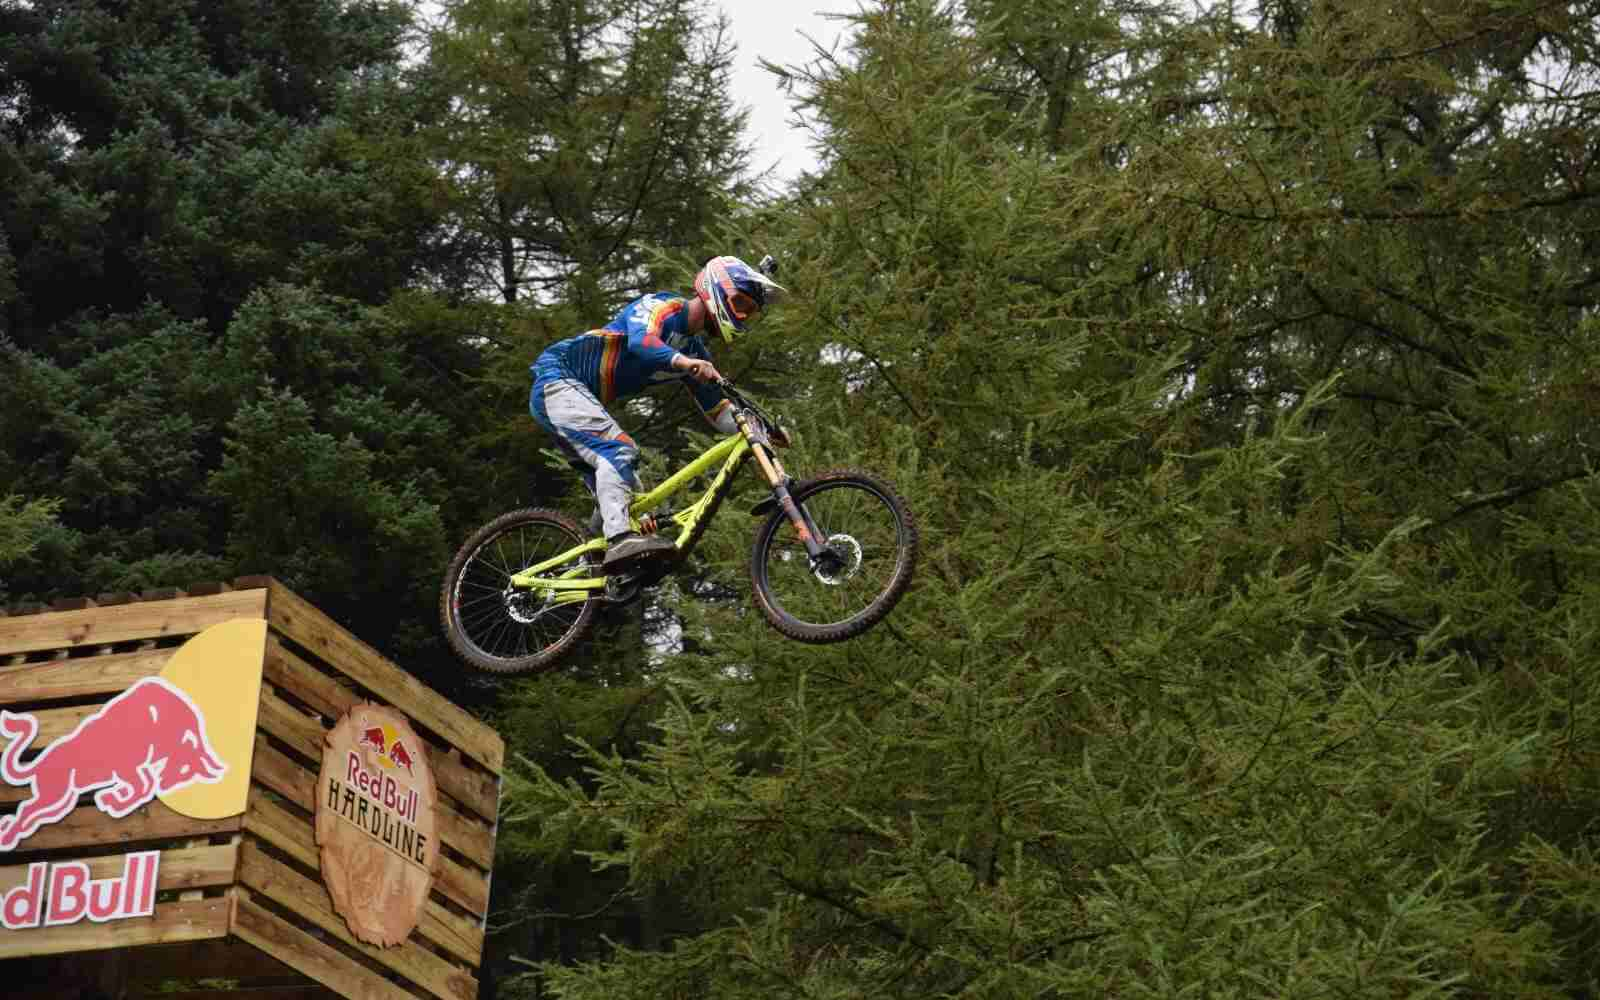 MTB jumping drop off Red Bull Hardline copyright Luke Ryan